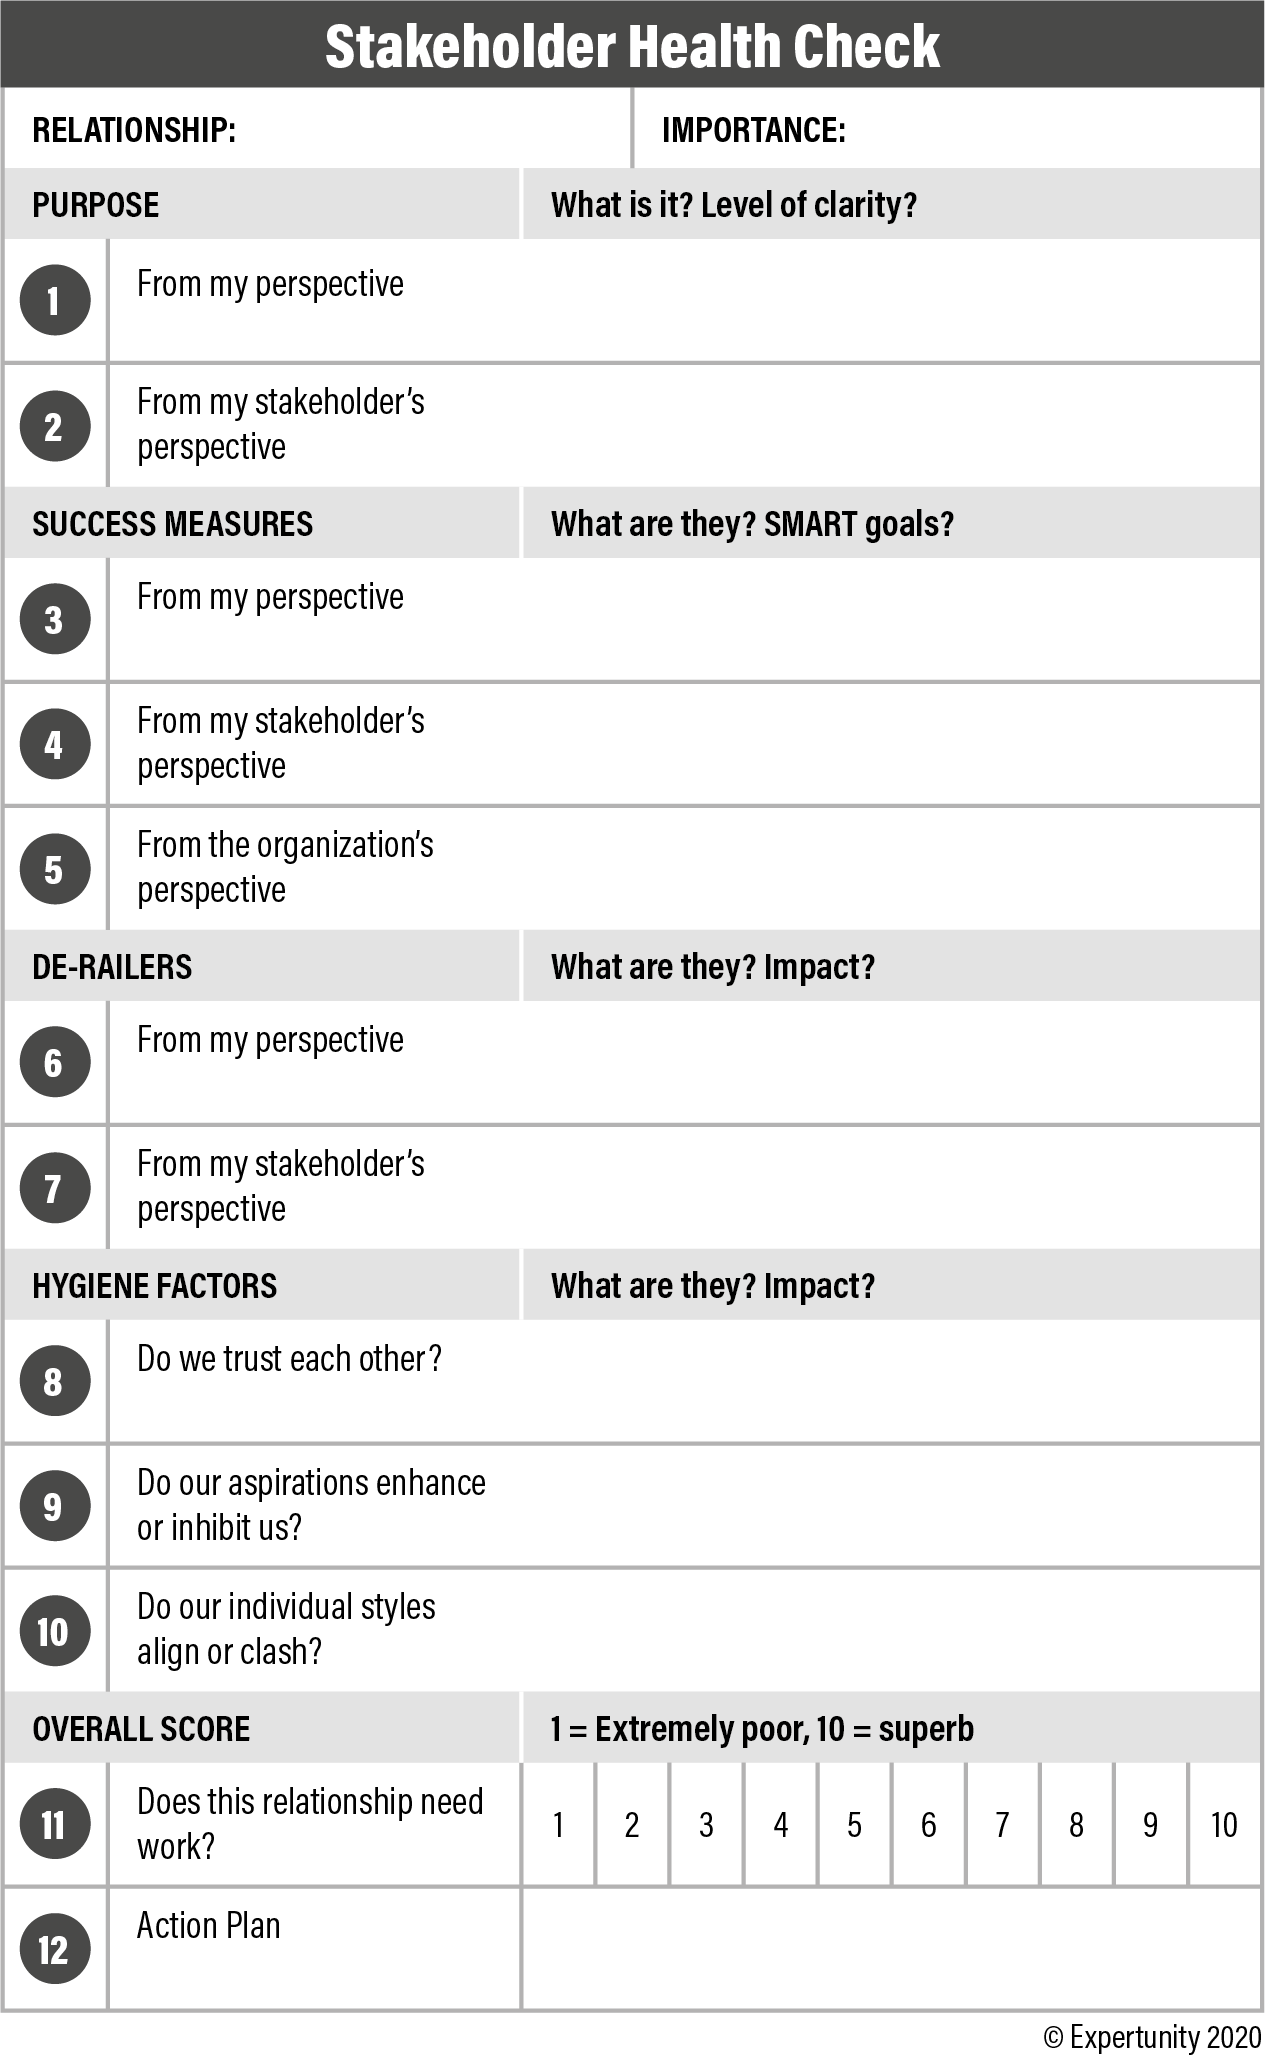 A stakeholder health check form